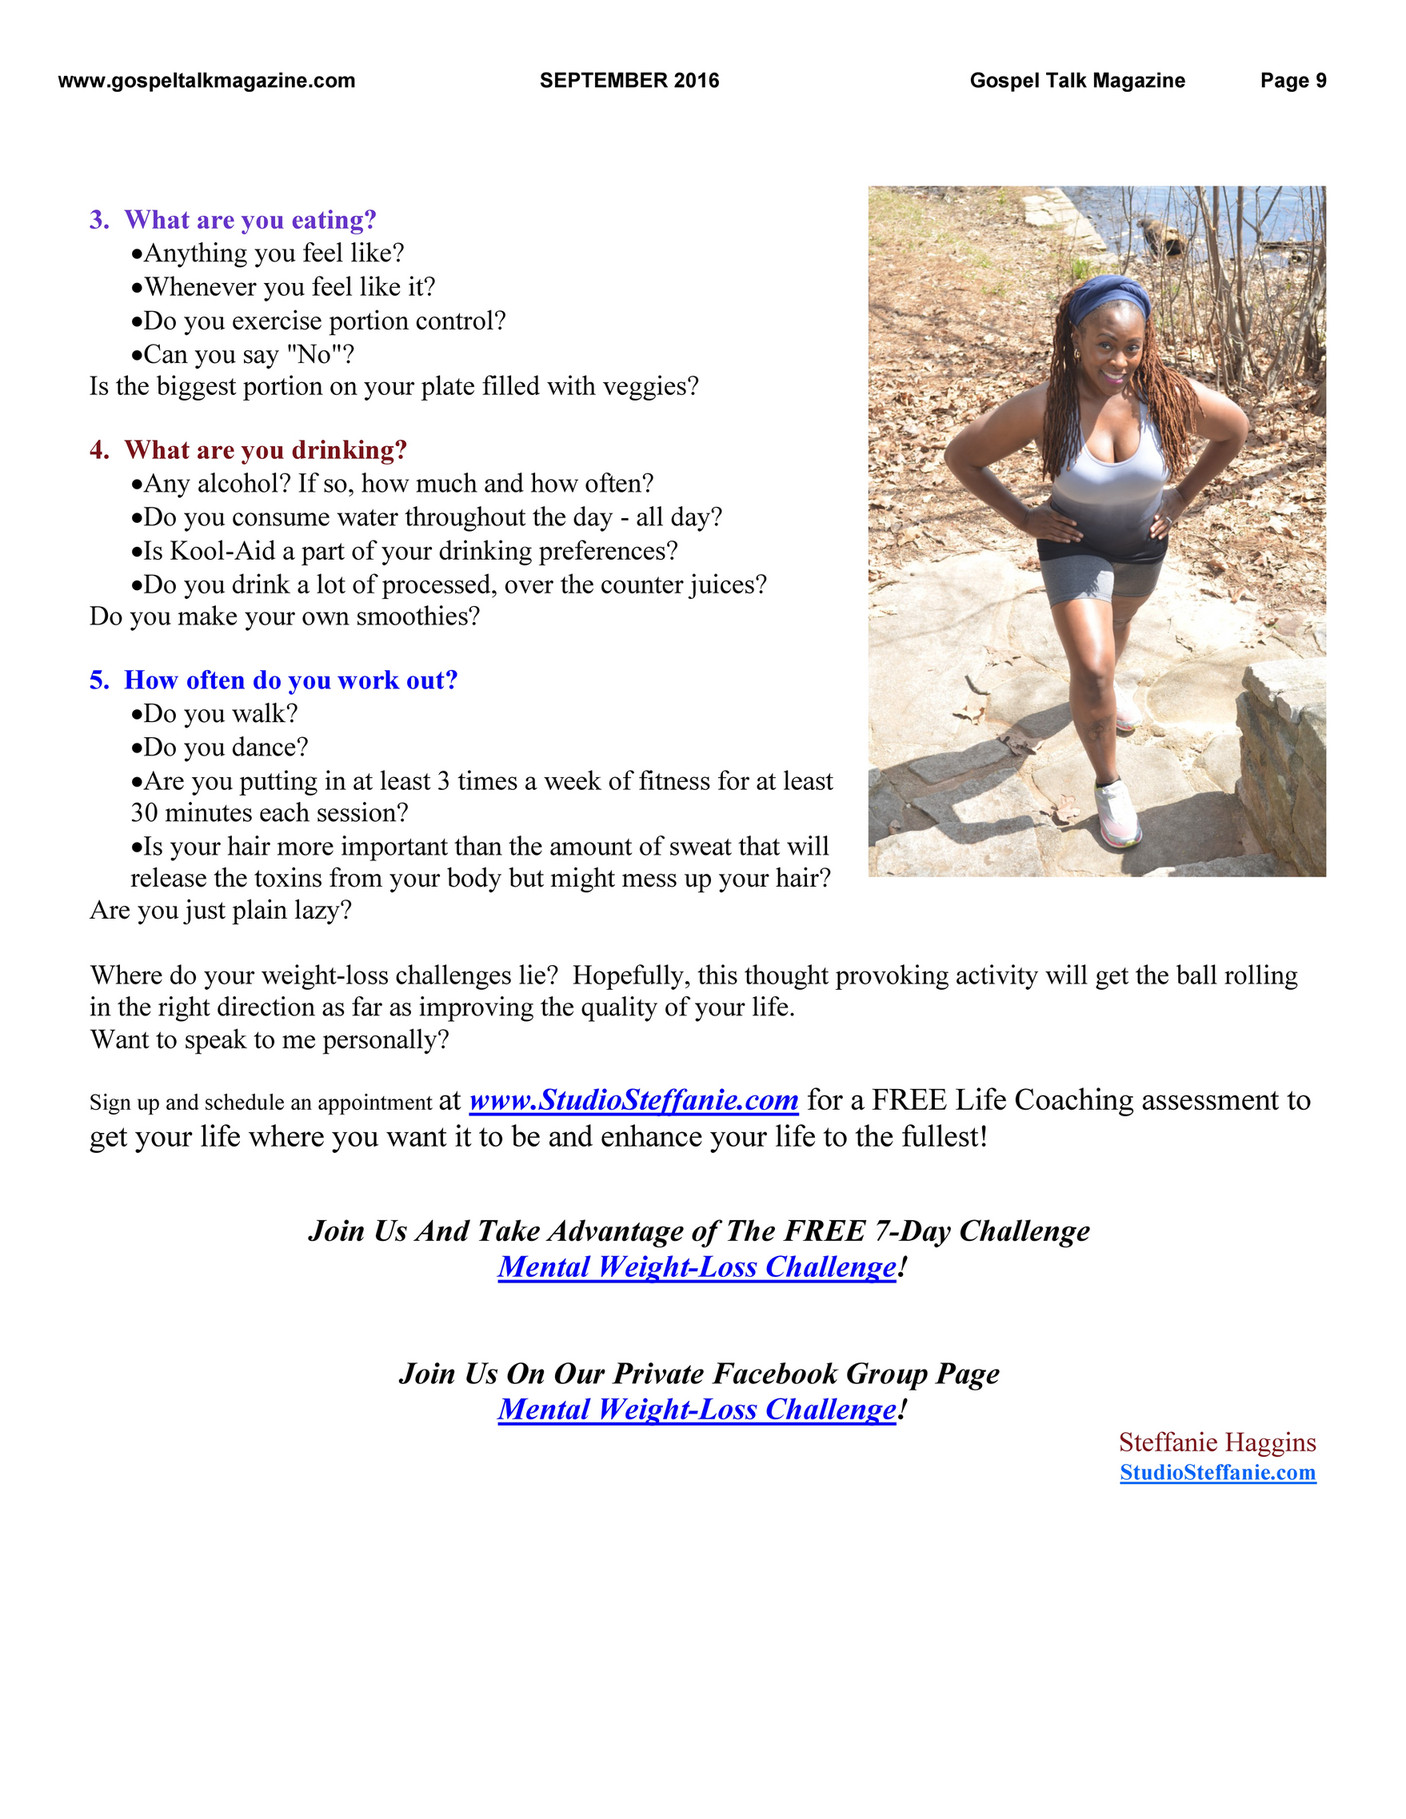 gospel talk magazine 2016 page 8 9 created join us and take advantage of the 7 day challenge mental weight loss challenge join us on our private facebook group page